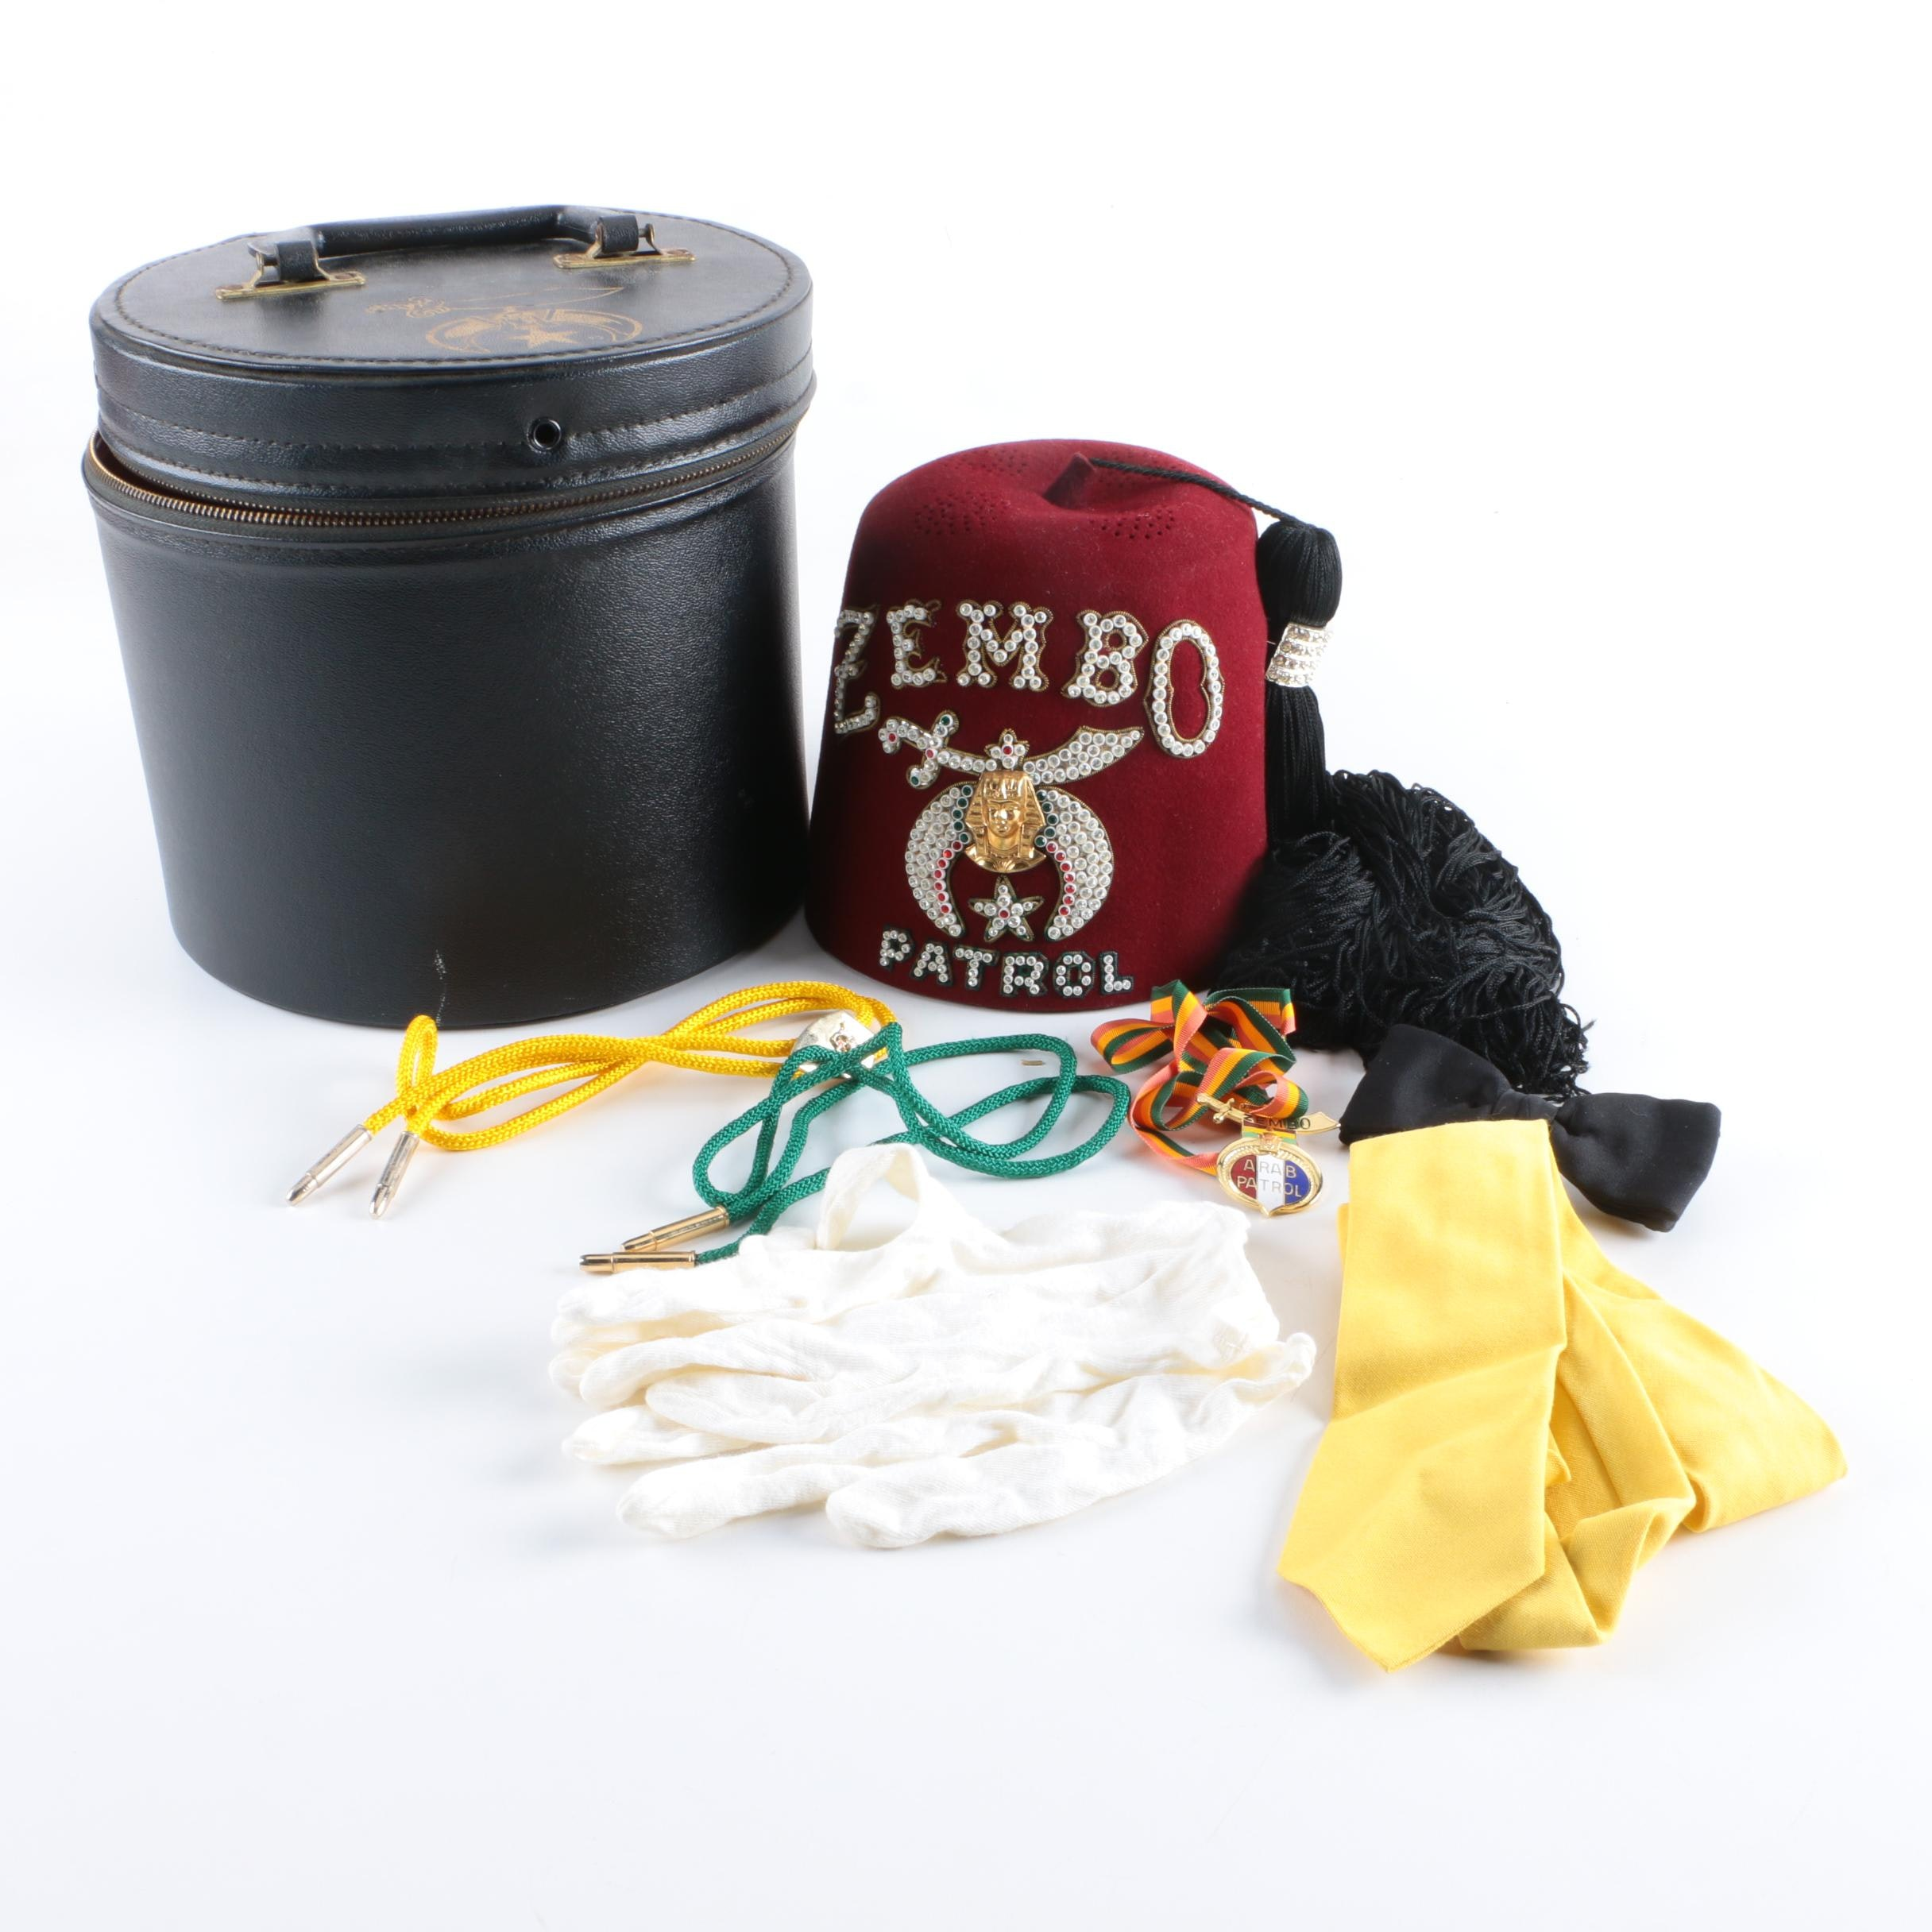 Zembo Patrol Fez with Carrying Case and Masonic Style Accessories